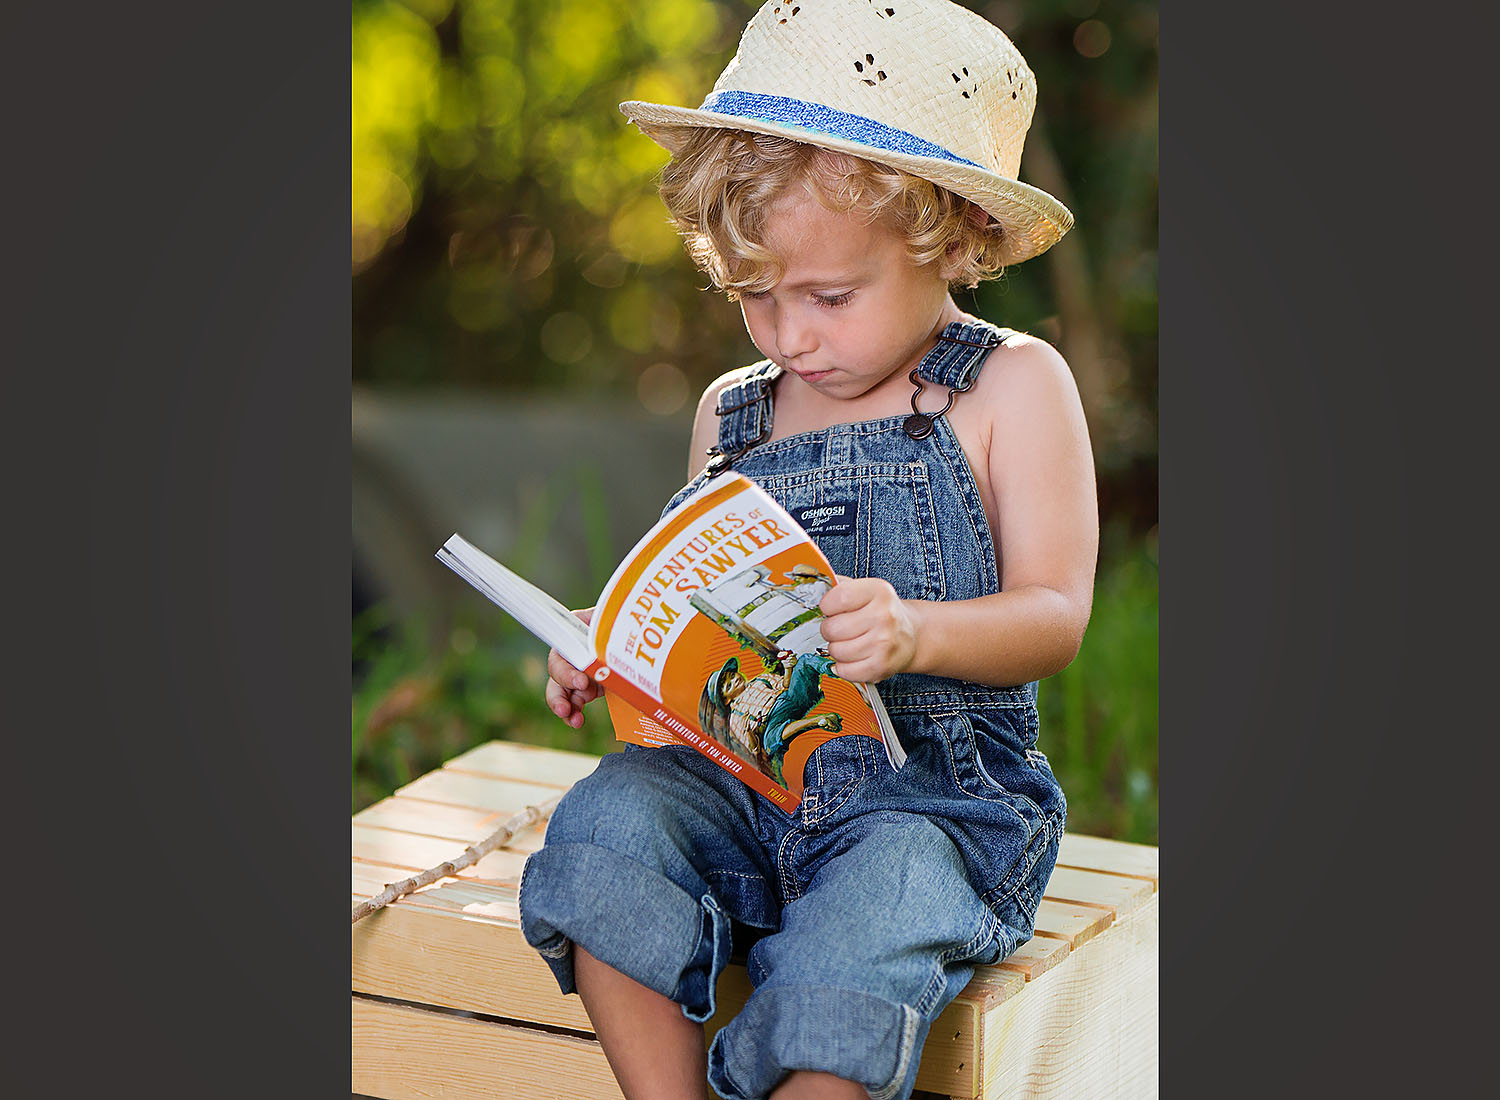 Preschooler reading the adventures of tom sawyer on location